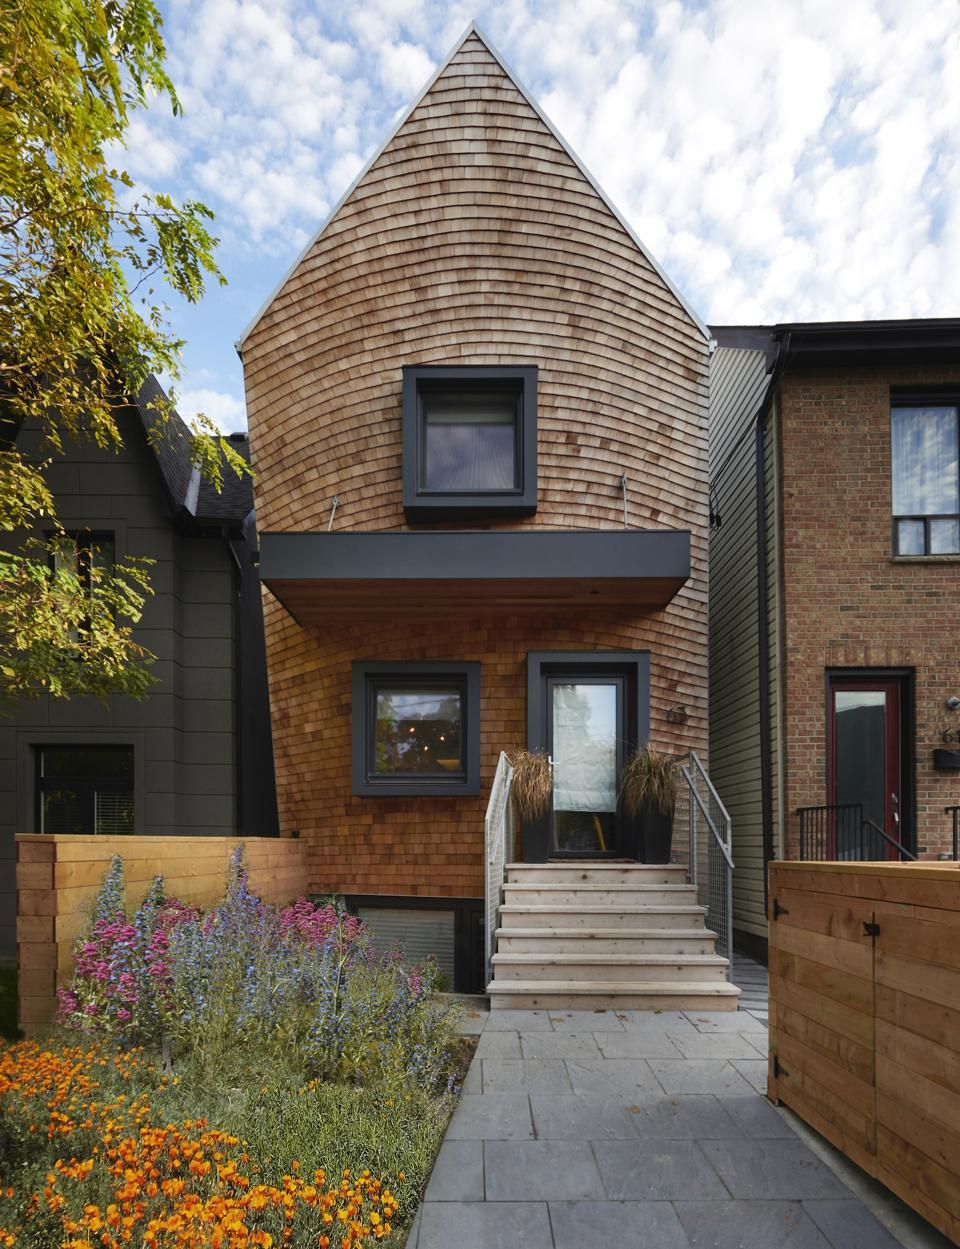 This 1200 square foot house suits a family well in Toronto, Canada, built very energy efficiently and sustainably.